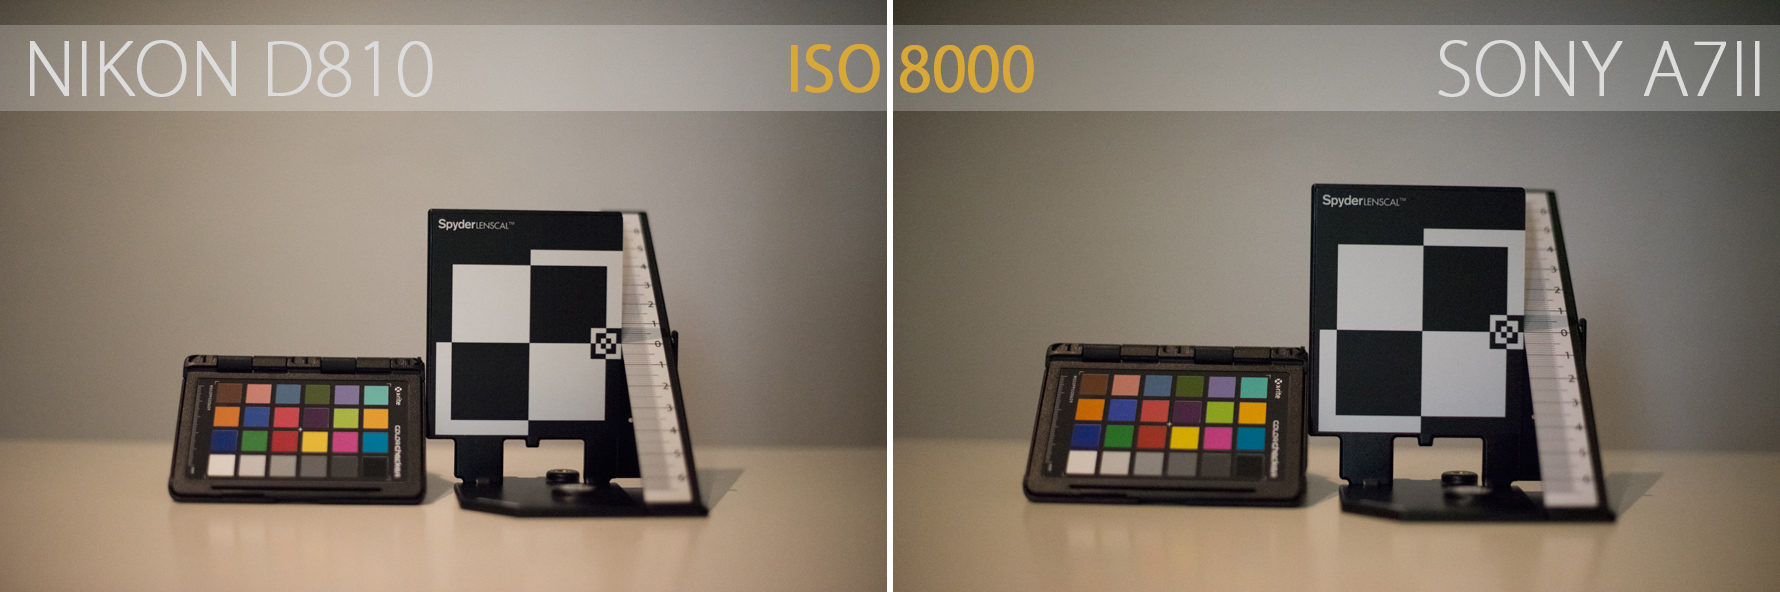 comparison between Nikon D810 and Sony a7II to ISO 8000